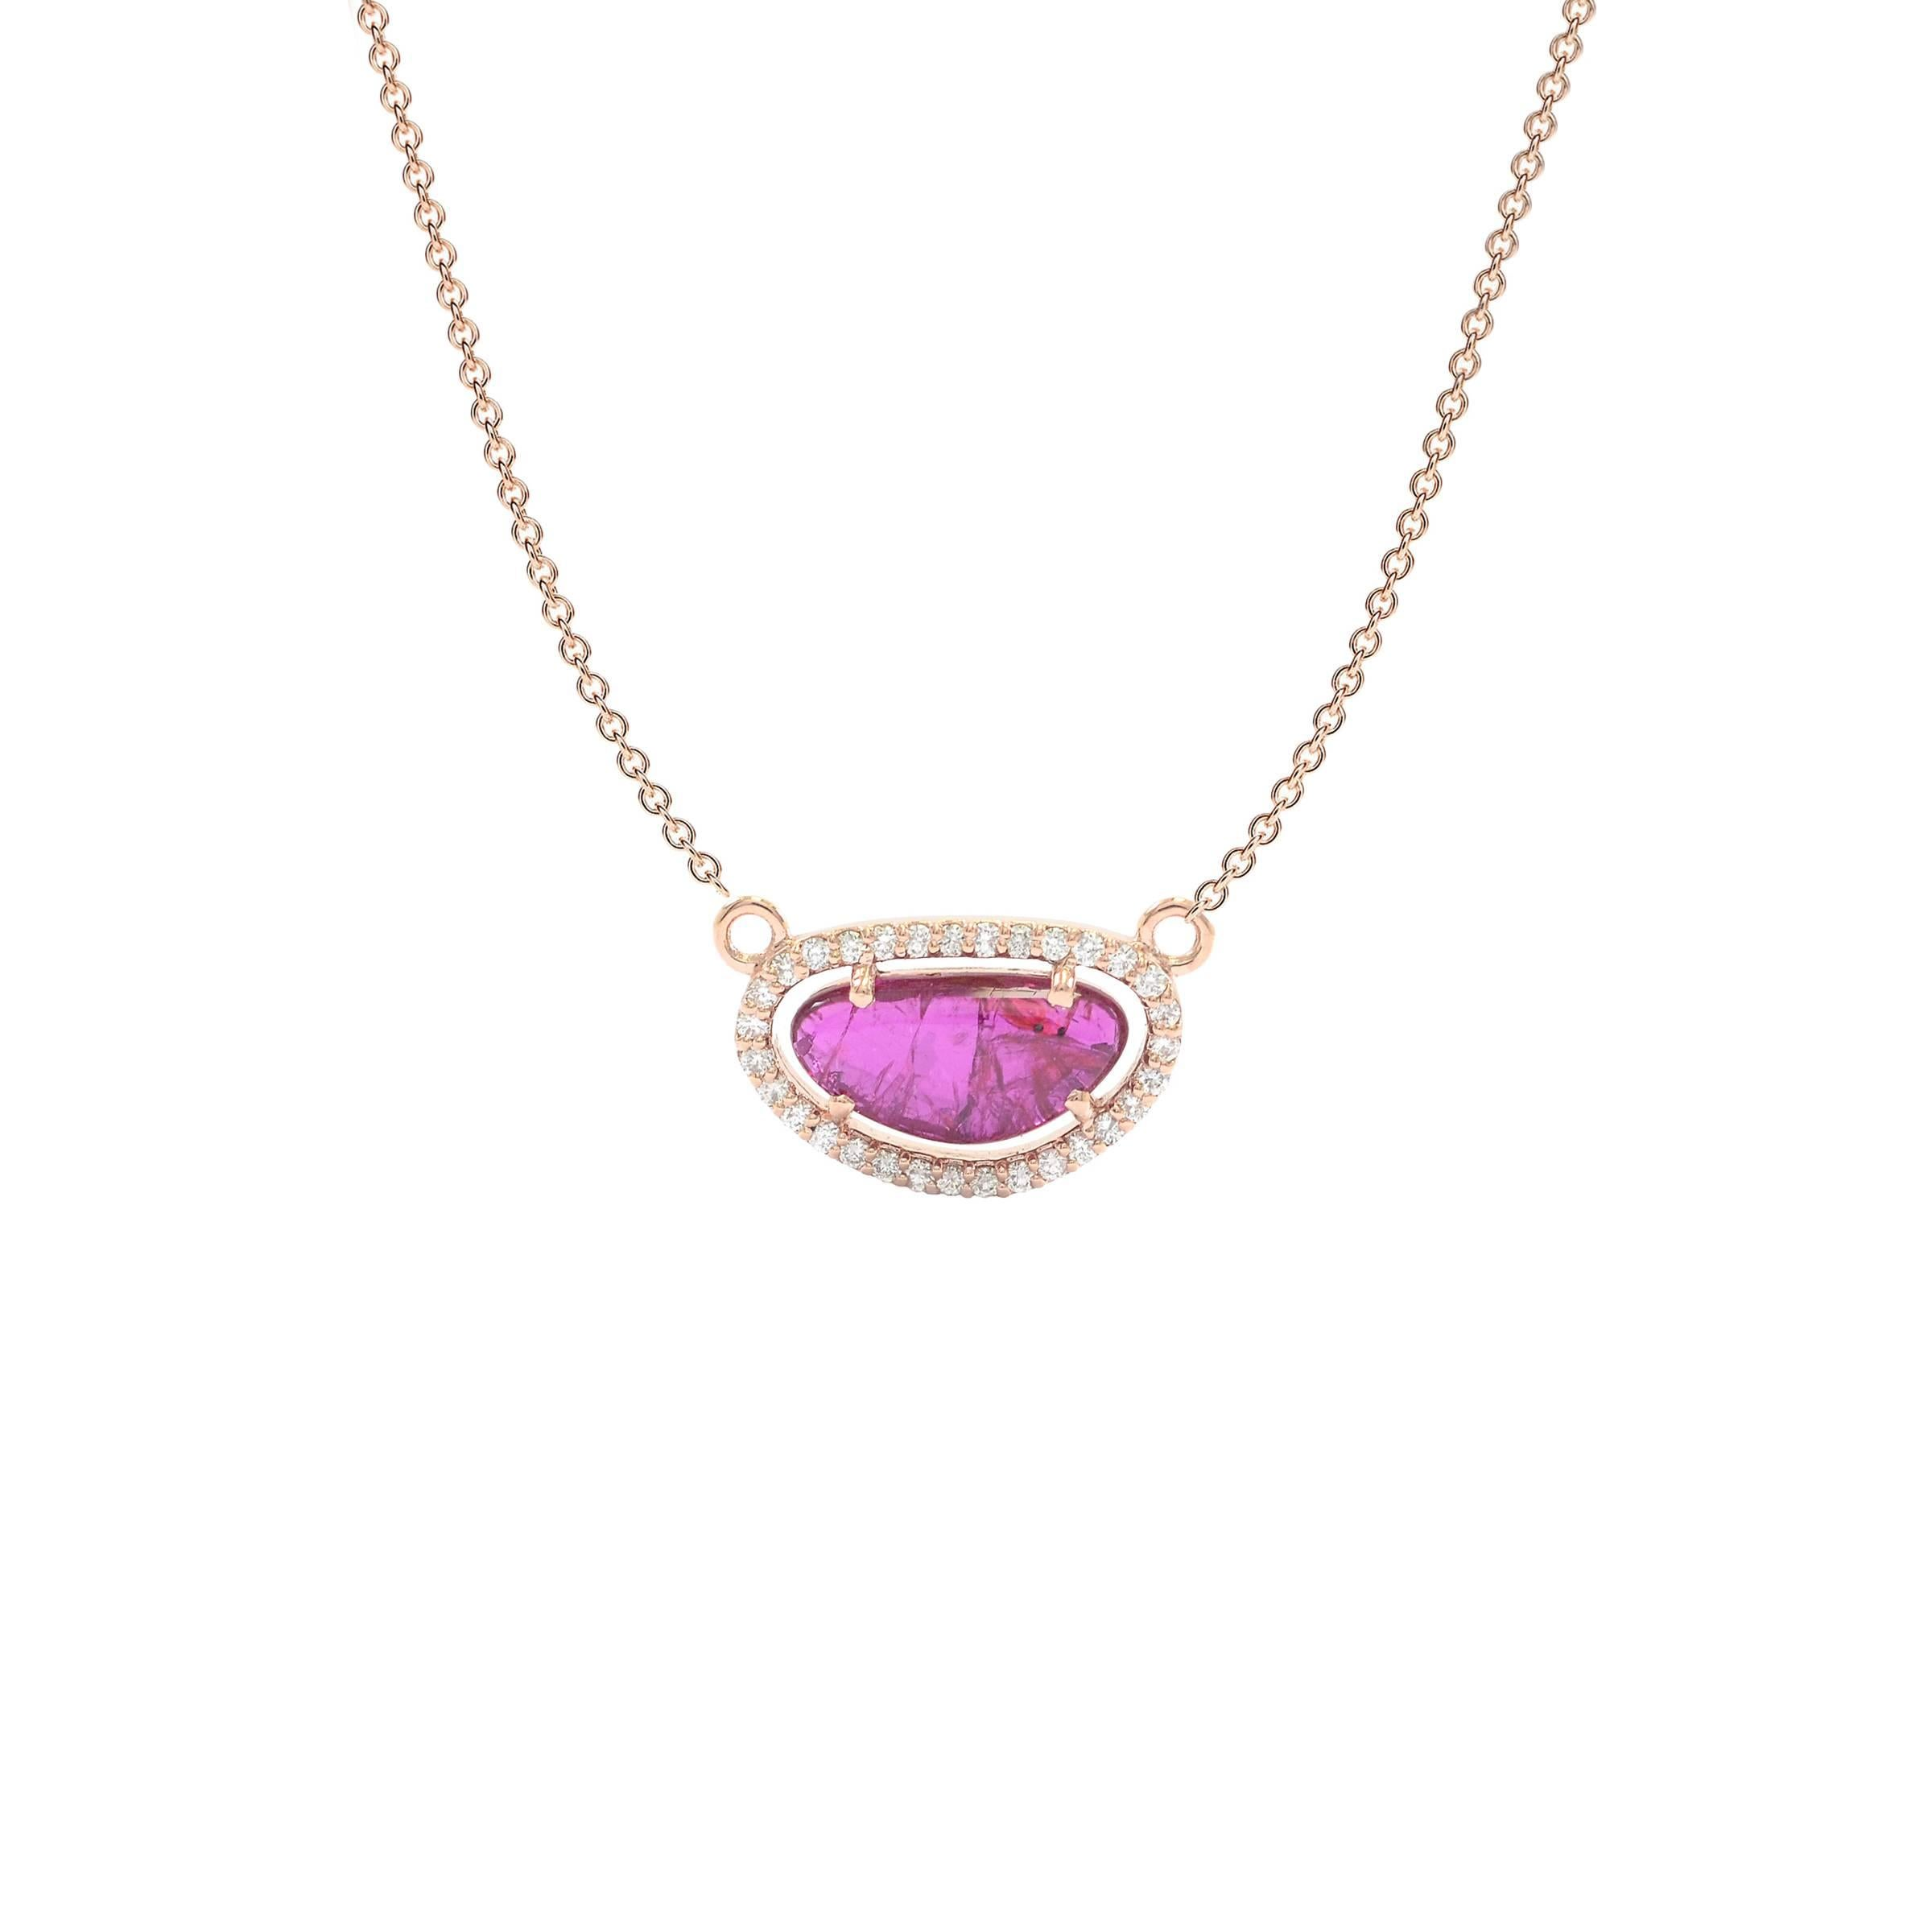 collections products los necklace bead curated marquis white gold necklaces rose diamond pendant on